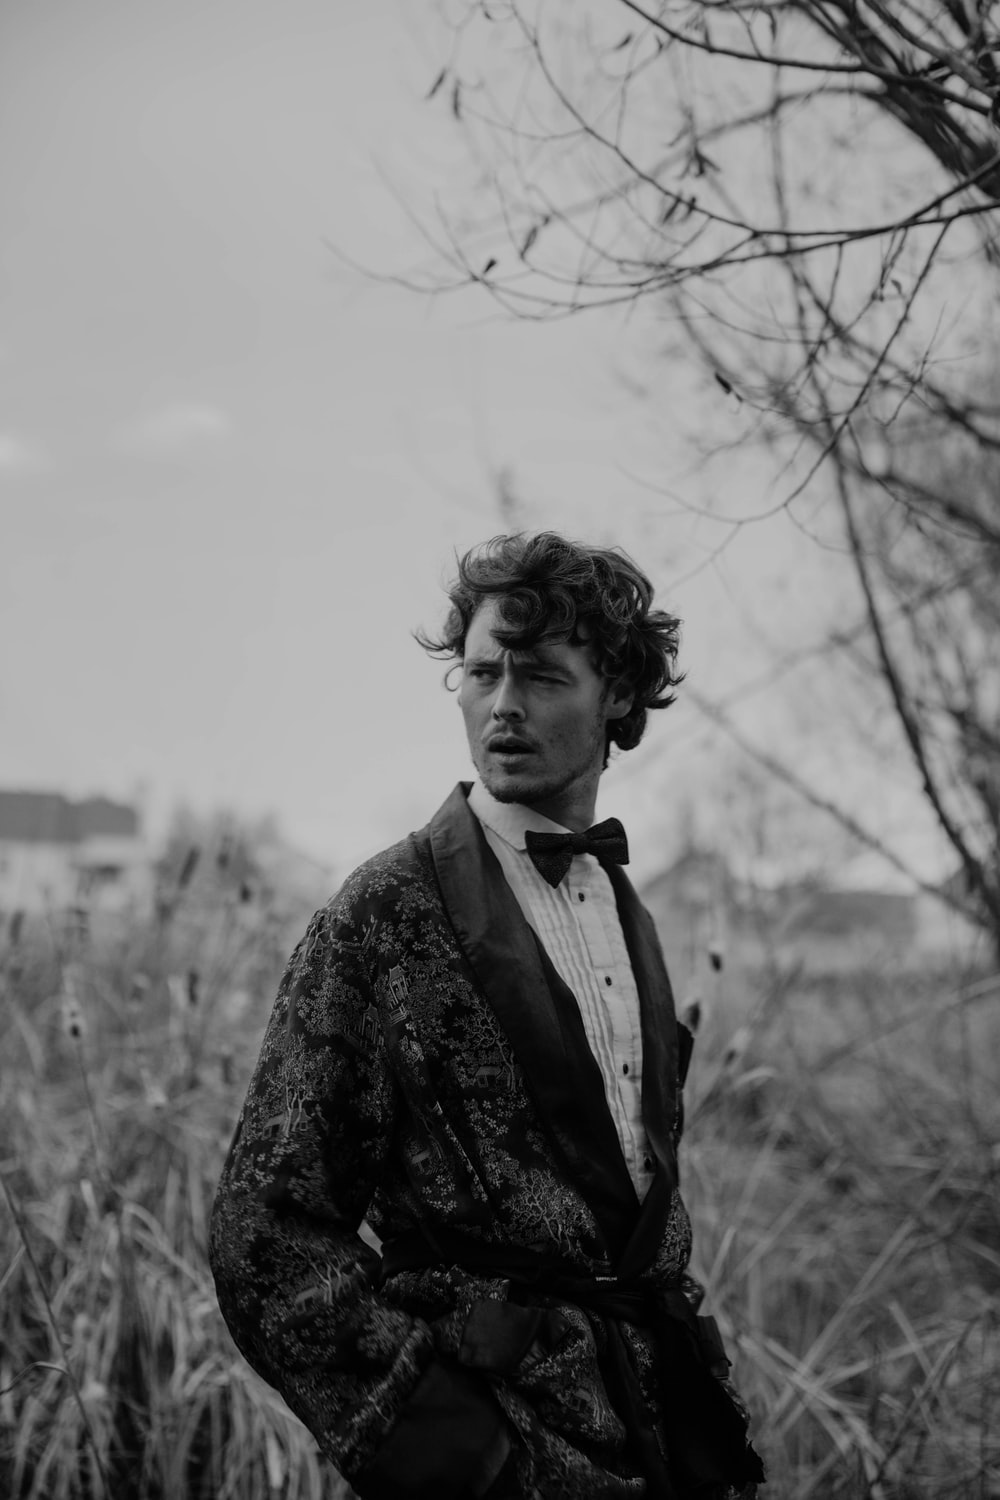 grayscale photography of man wearing tuxedo